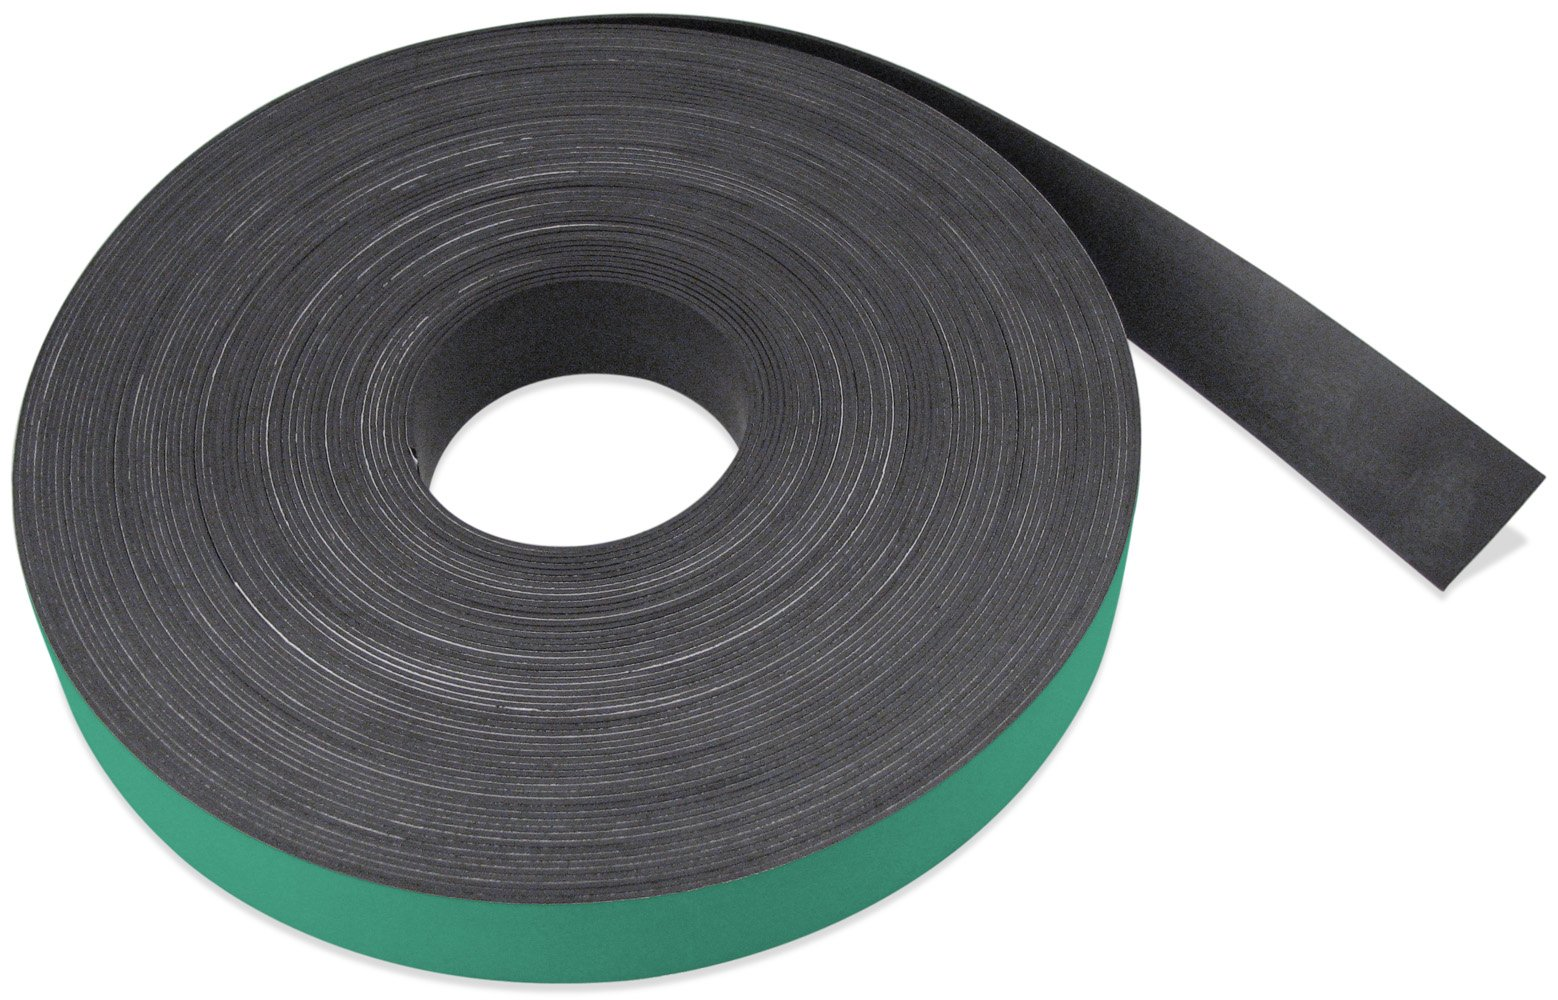 Flexible Magnet Strip with Green Vinyl Coating, 1/32'' Thick, 3'' Height, 50 Feet, 1 Roll